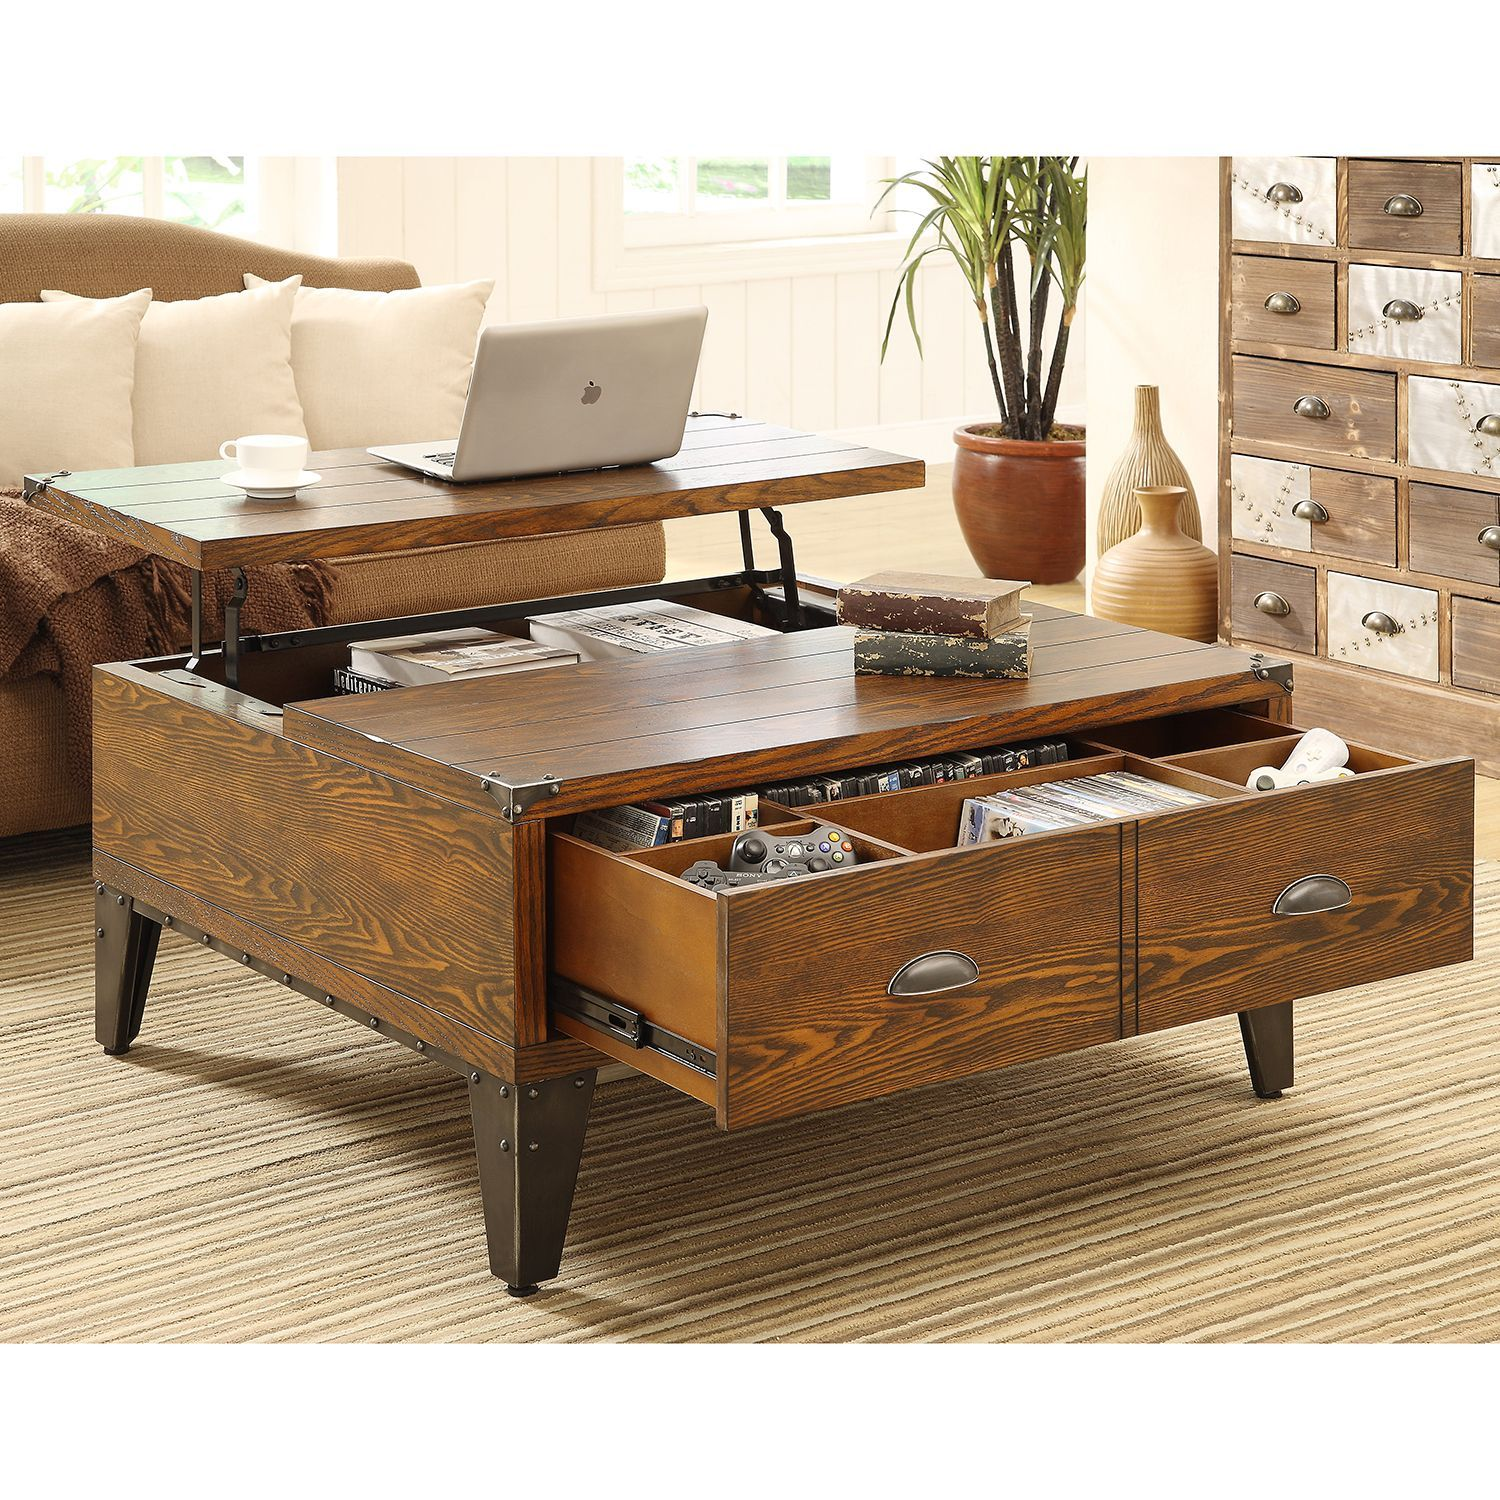 Wellington LiftTop Coffee Table For The Home Pinterest Lift - Lift top coffee table with storage drawers